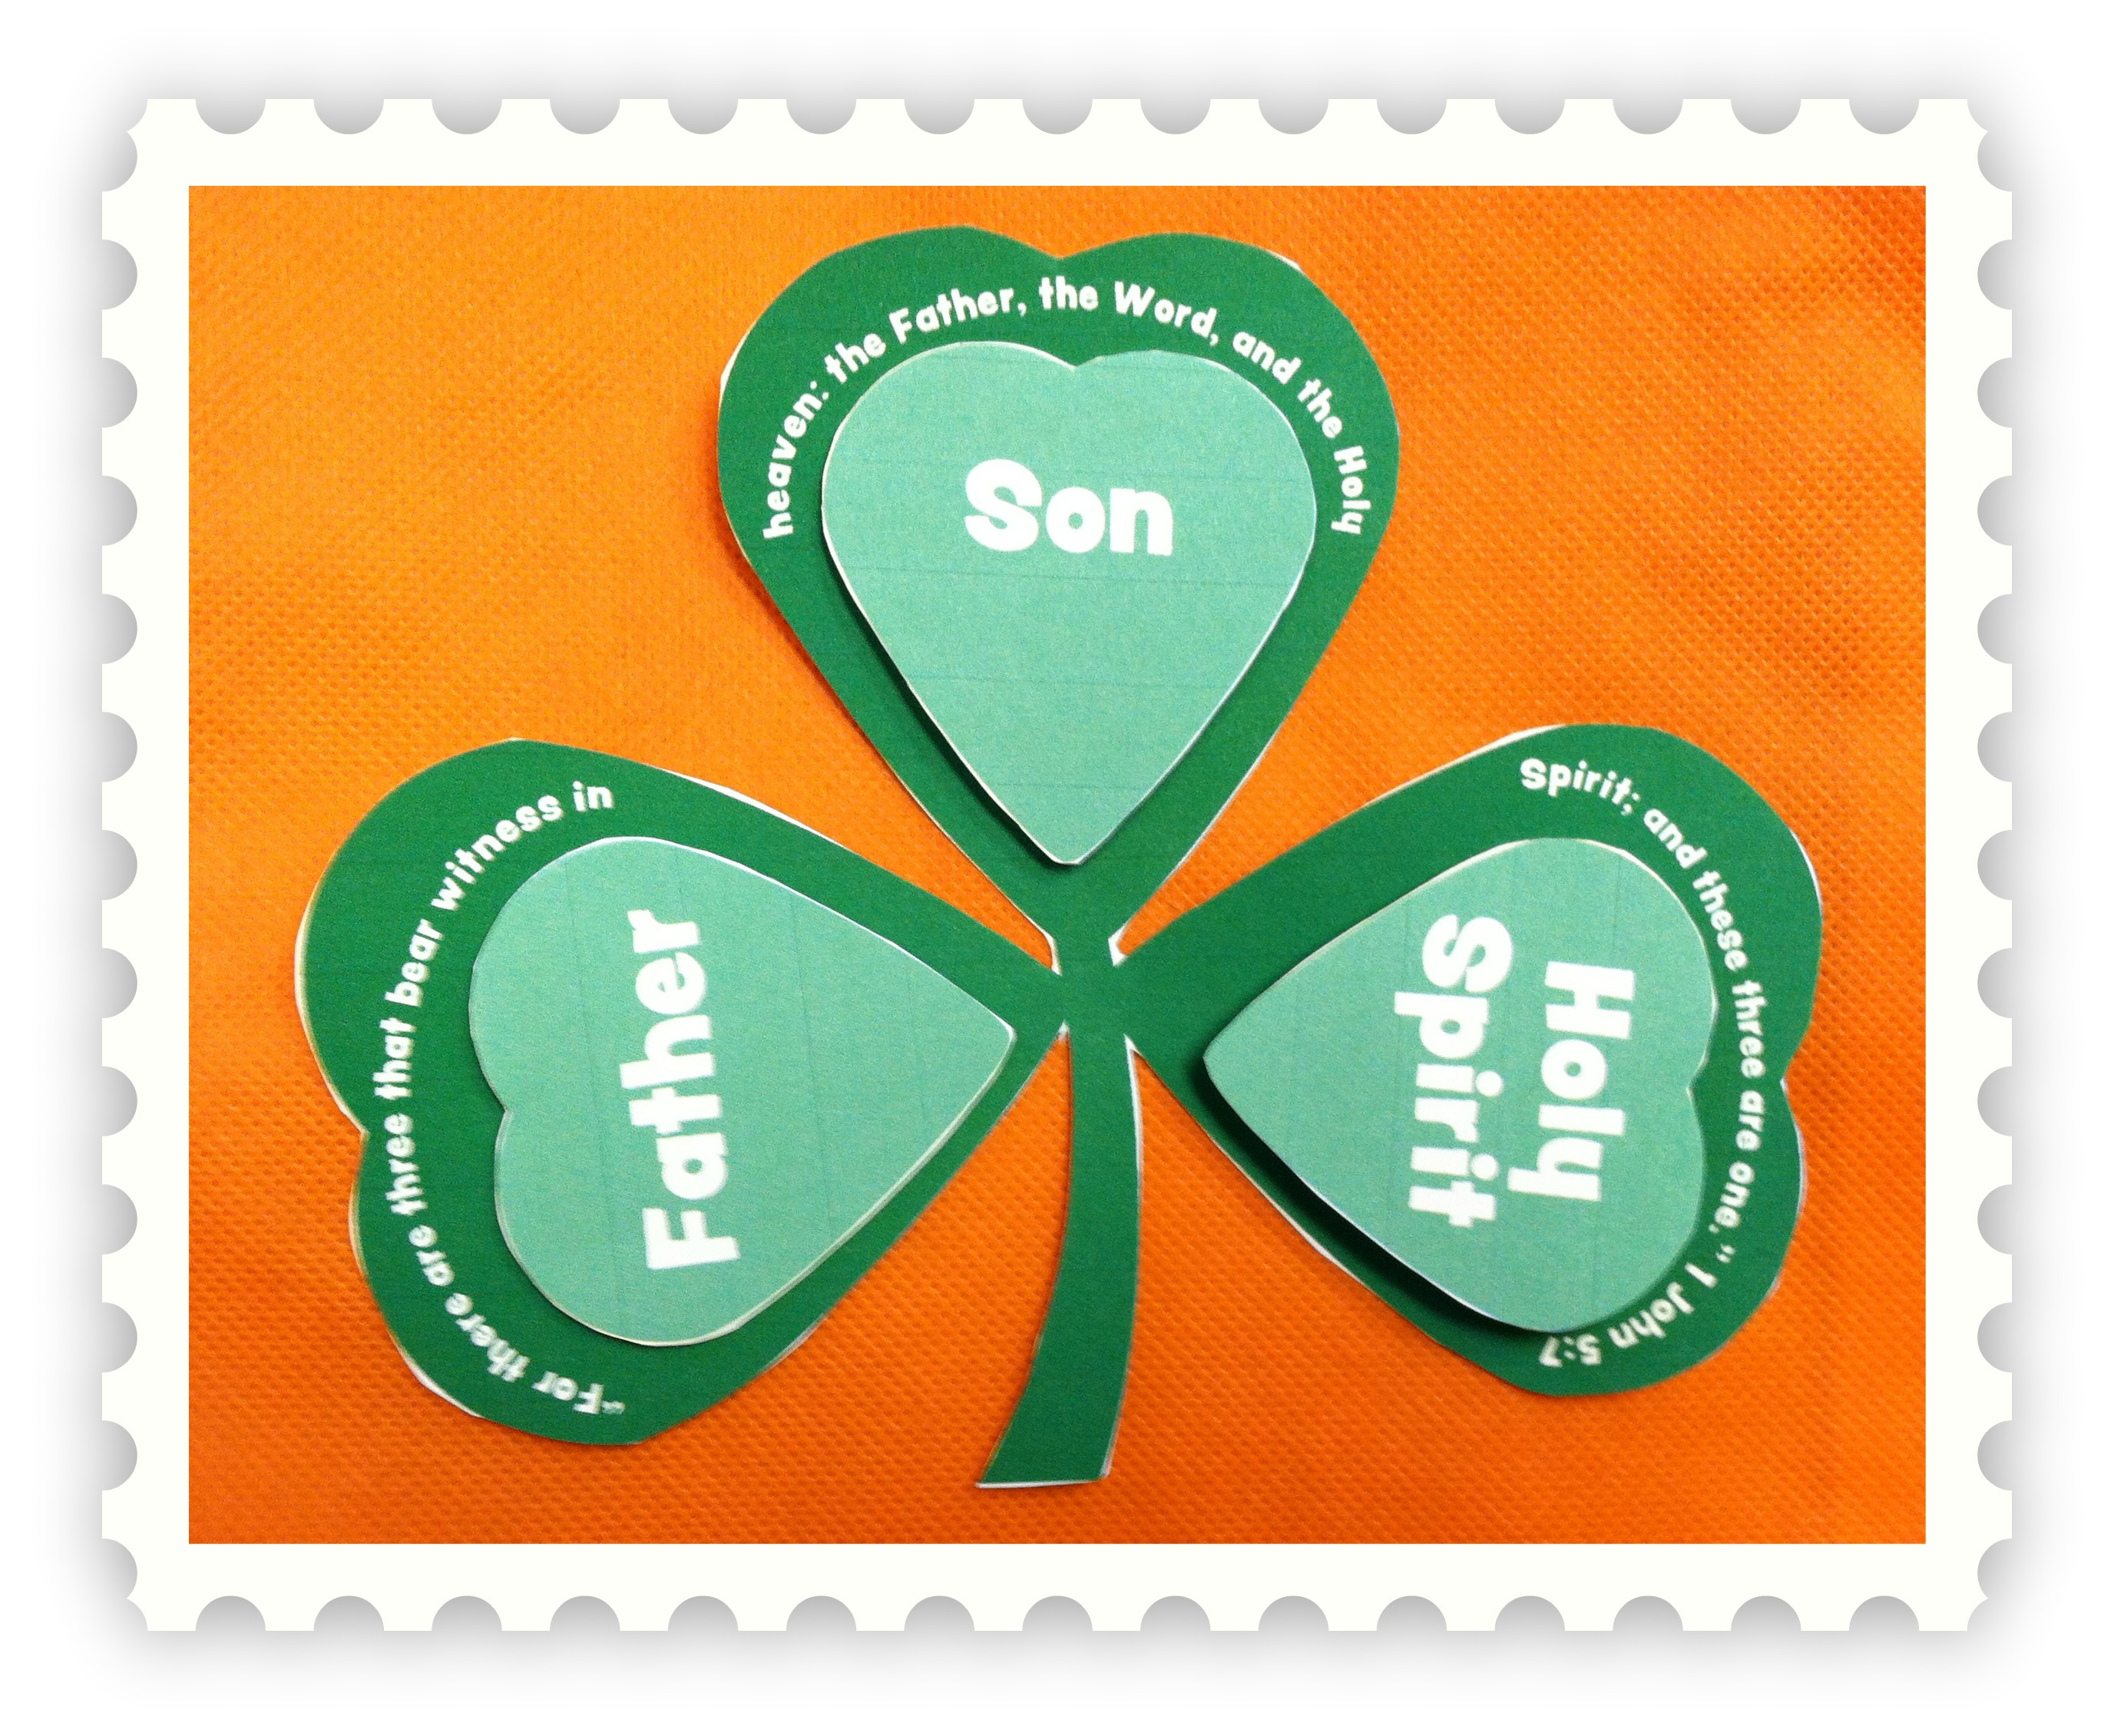 Trinity  So Teach About St  Patrick And God By Using This Shamrock To